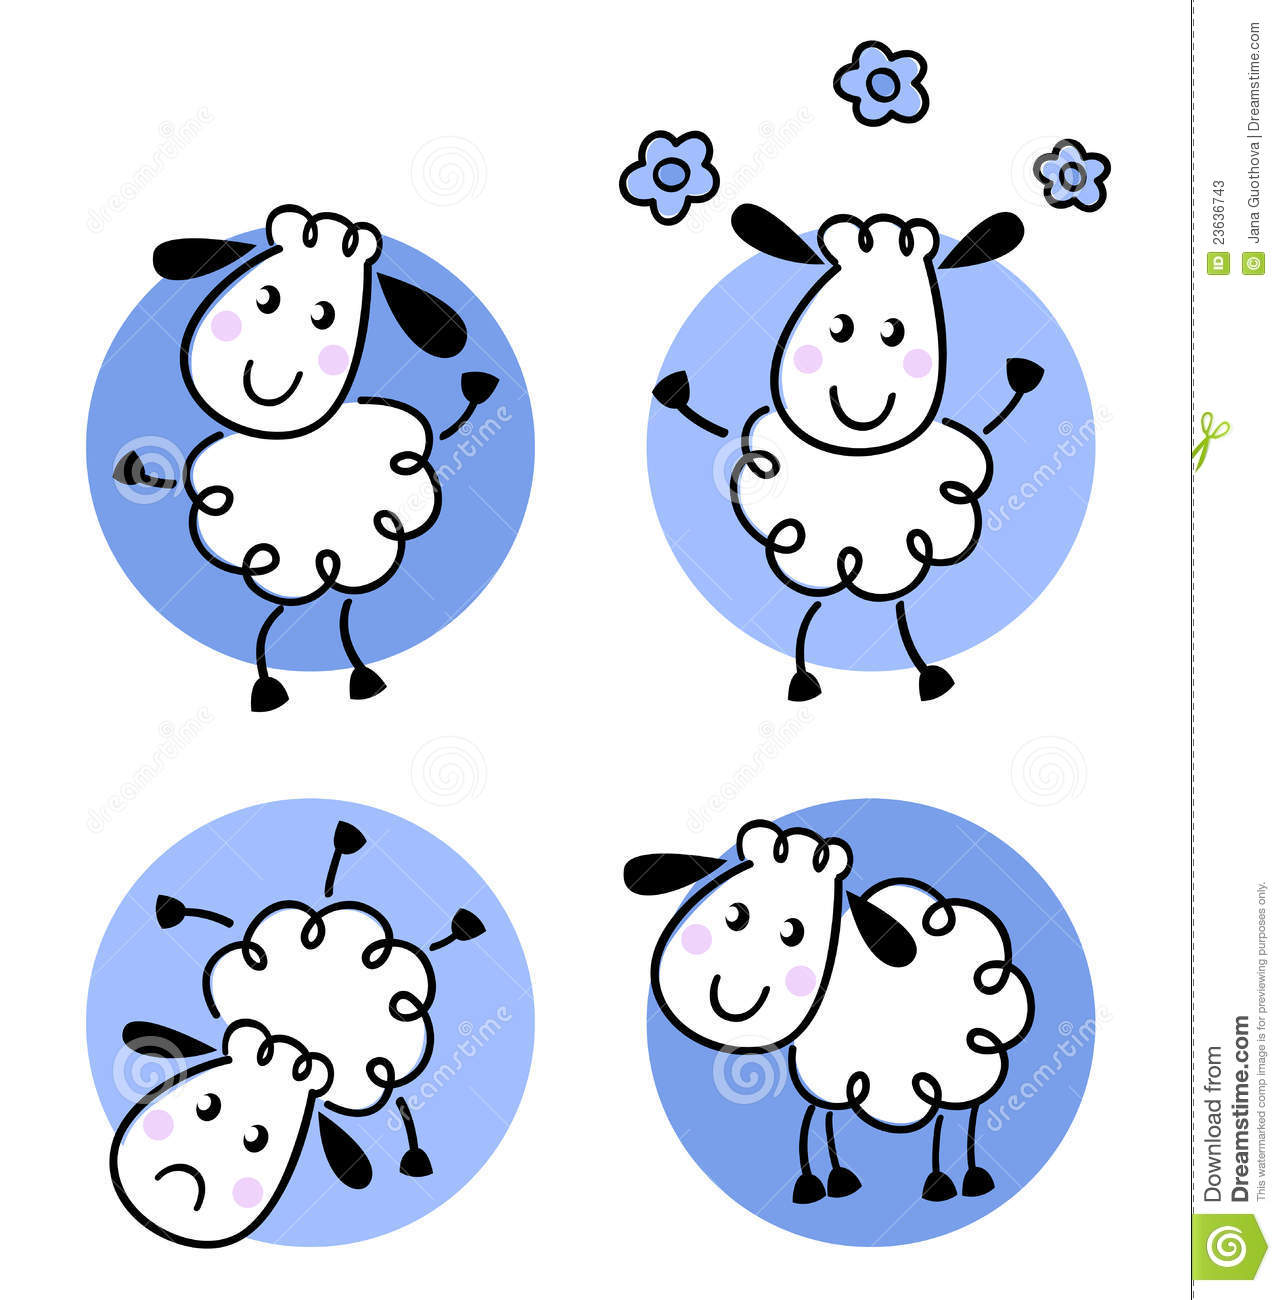 Cute Sheep Drawing Tumblr Stock Photos Cute Doodle Sheep Collection Image 23636743